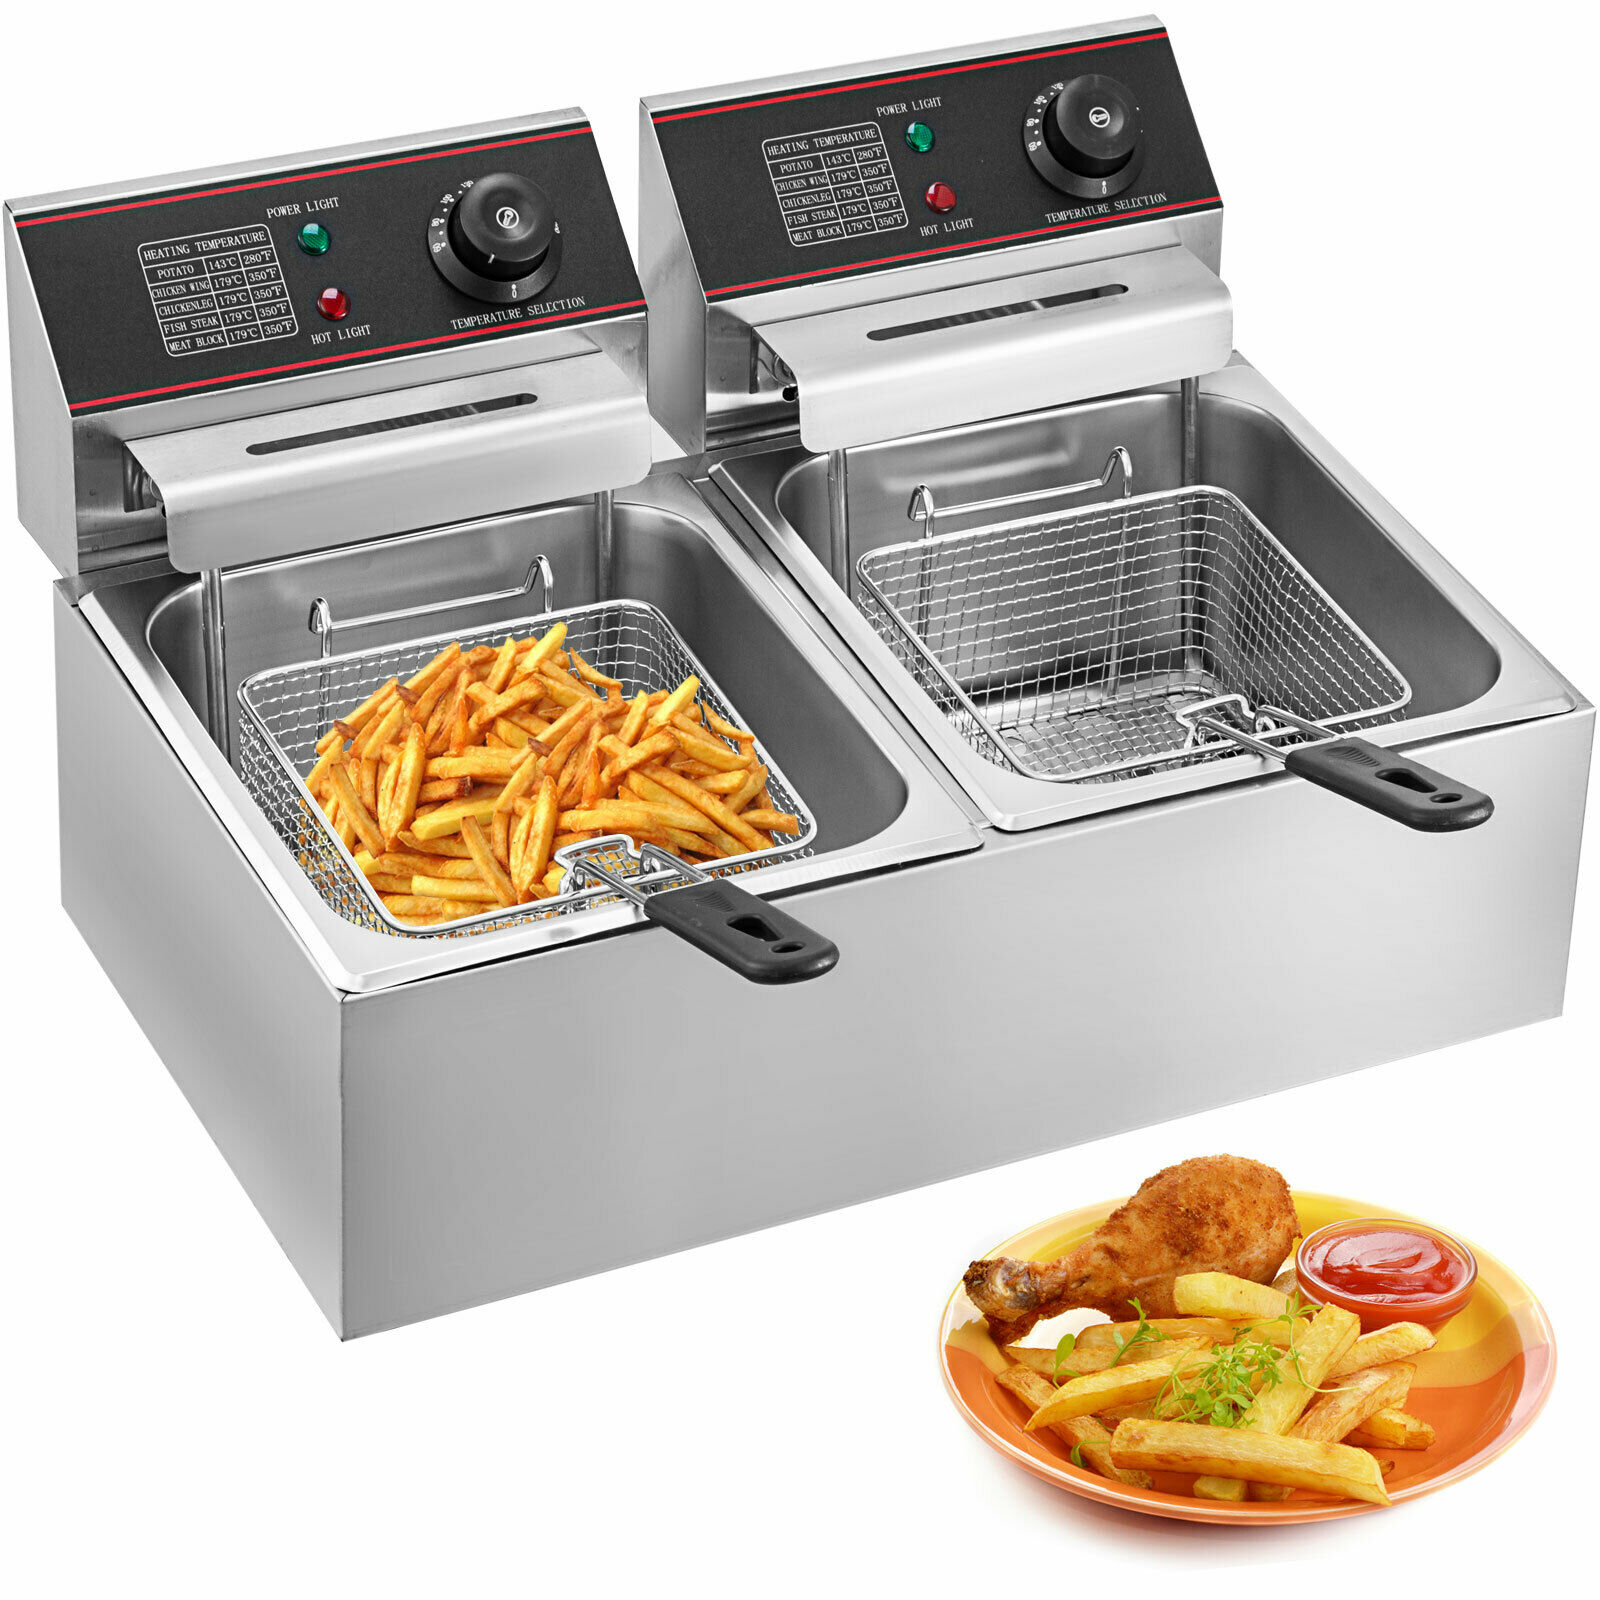 Electric Deep Fryer Fat Fry Chip Commercial Countertop Stainless Steel 12L 220V/110V/ YB-82 Free Shipping